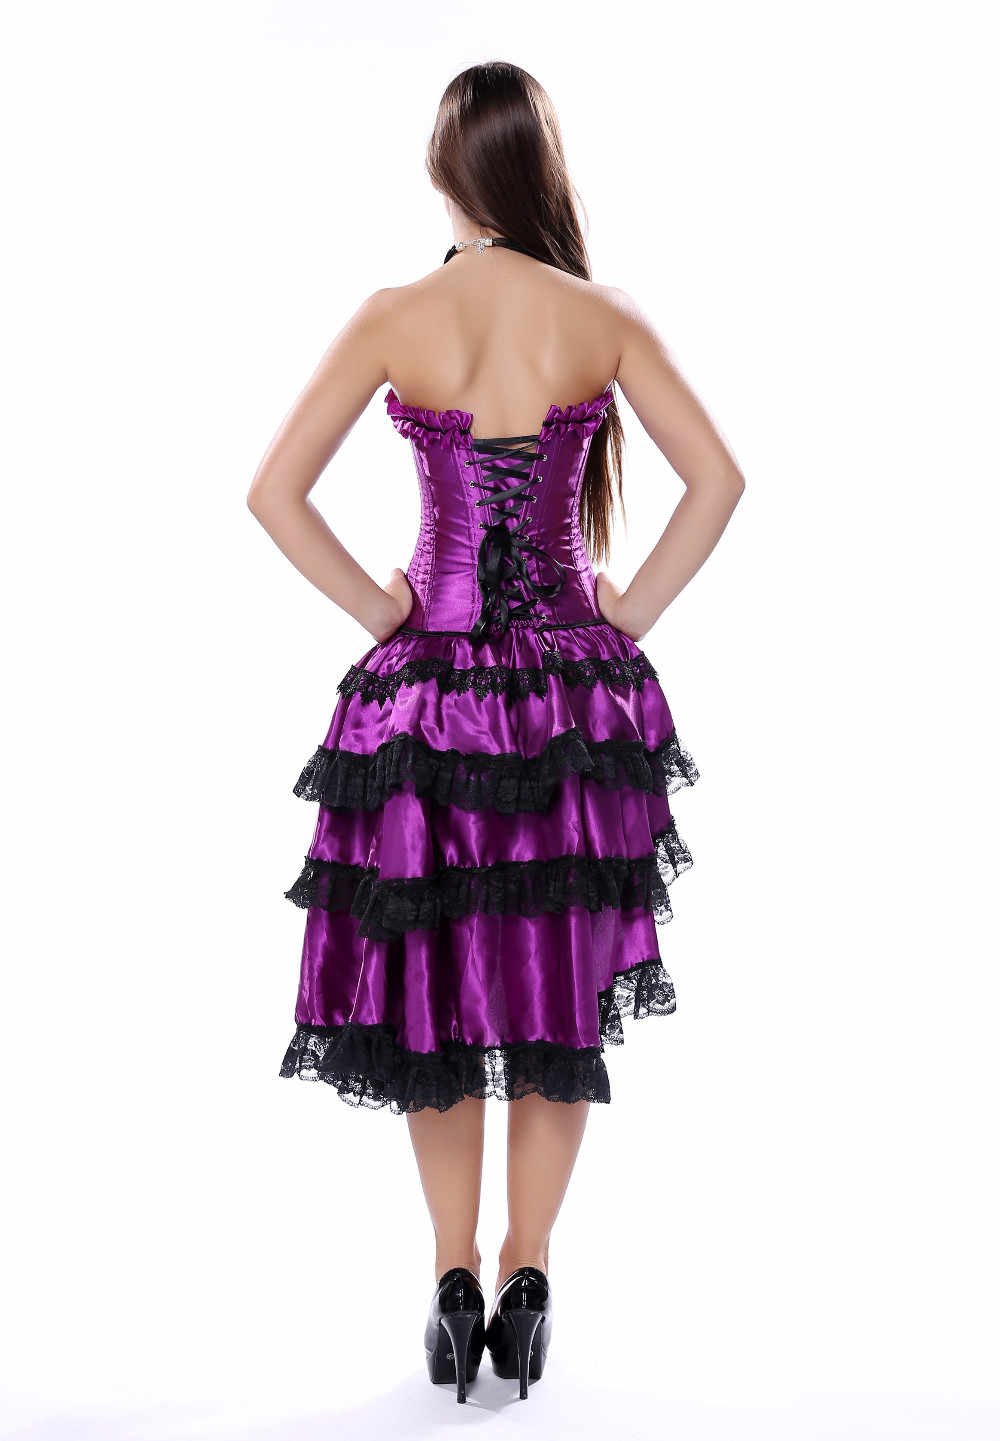 9e9ed3bc56f ... Gothic Burlesque Overbust Corset Sexy Purple Dancer Dress Lingerie  Showgirl Top with Layed Skirt Plus Size ...